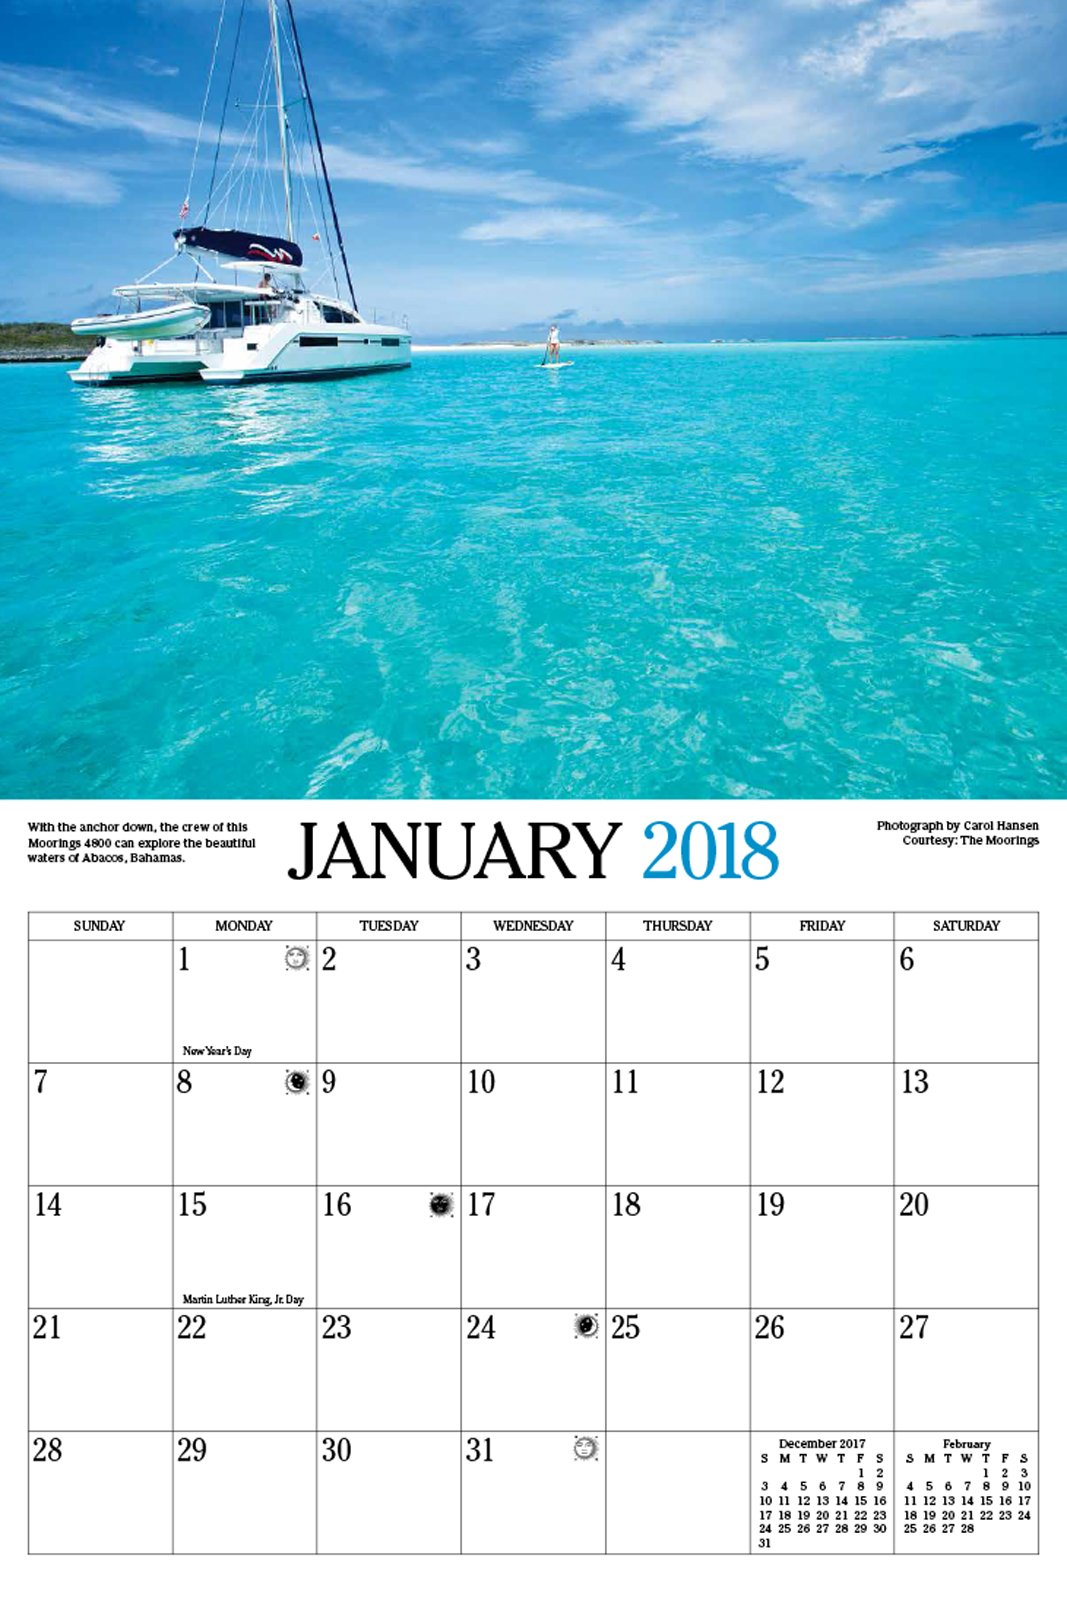 Cruising World 2018 Calendar: Cruising World Magazine: 9781631141607:  Amazon.com: Books